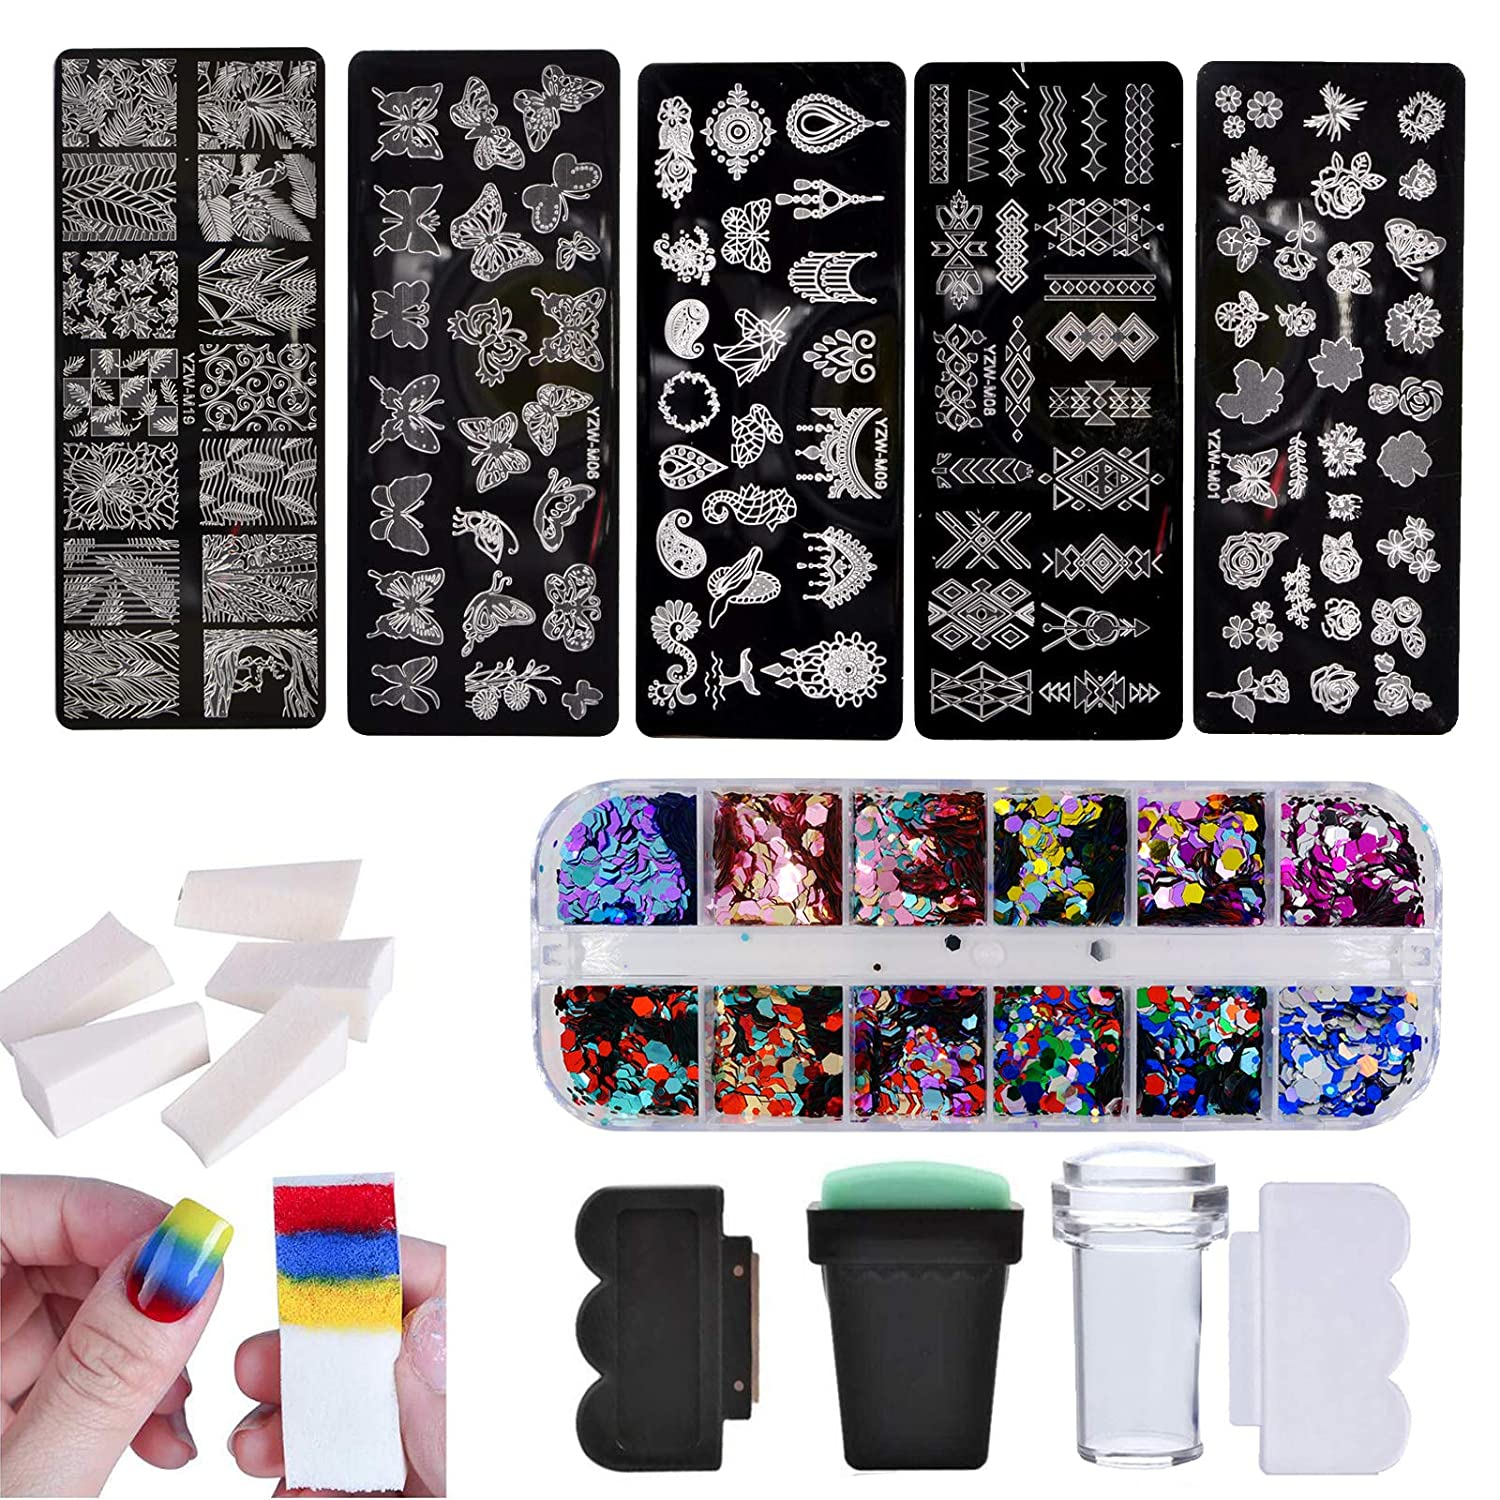 Bellefin Nail Art Tools Kit 5pcs Nail Stamping Plate 2pcs Stamper Scraper 12 Colors Chunky Glitters 5pcs Sponge Butterfly Animal Lace Geometry Image Template